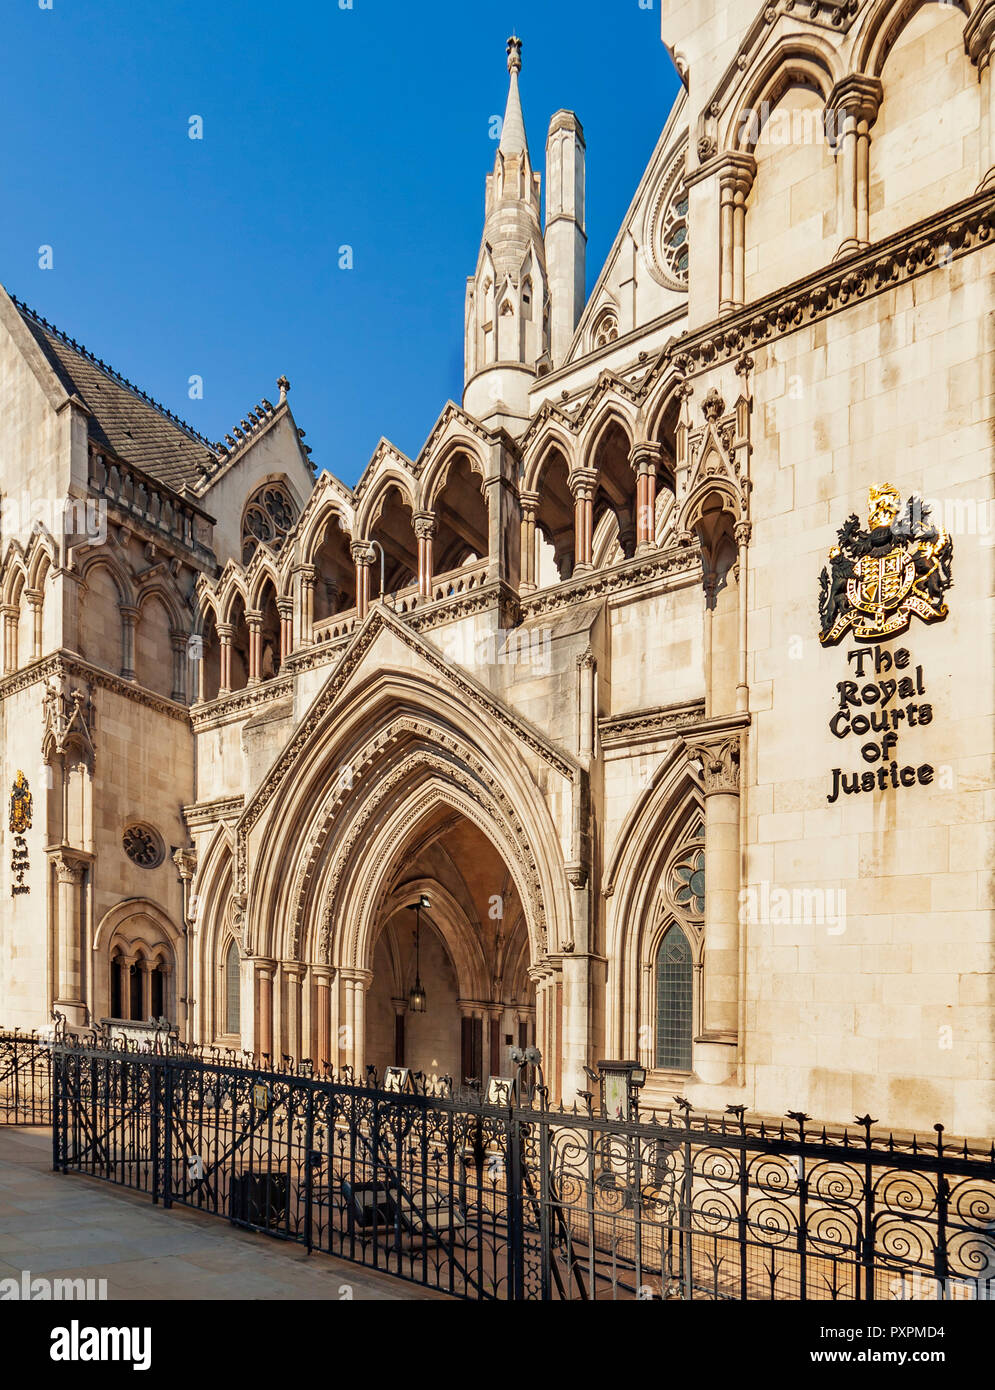 The Royal Courts of Justice, Strand, London. - Stock Image